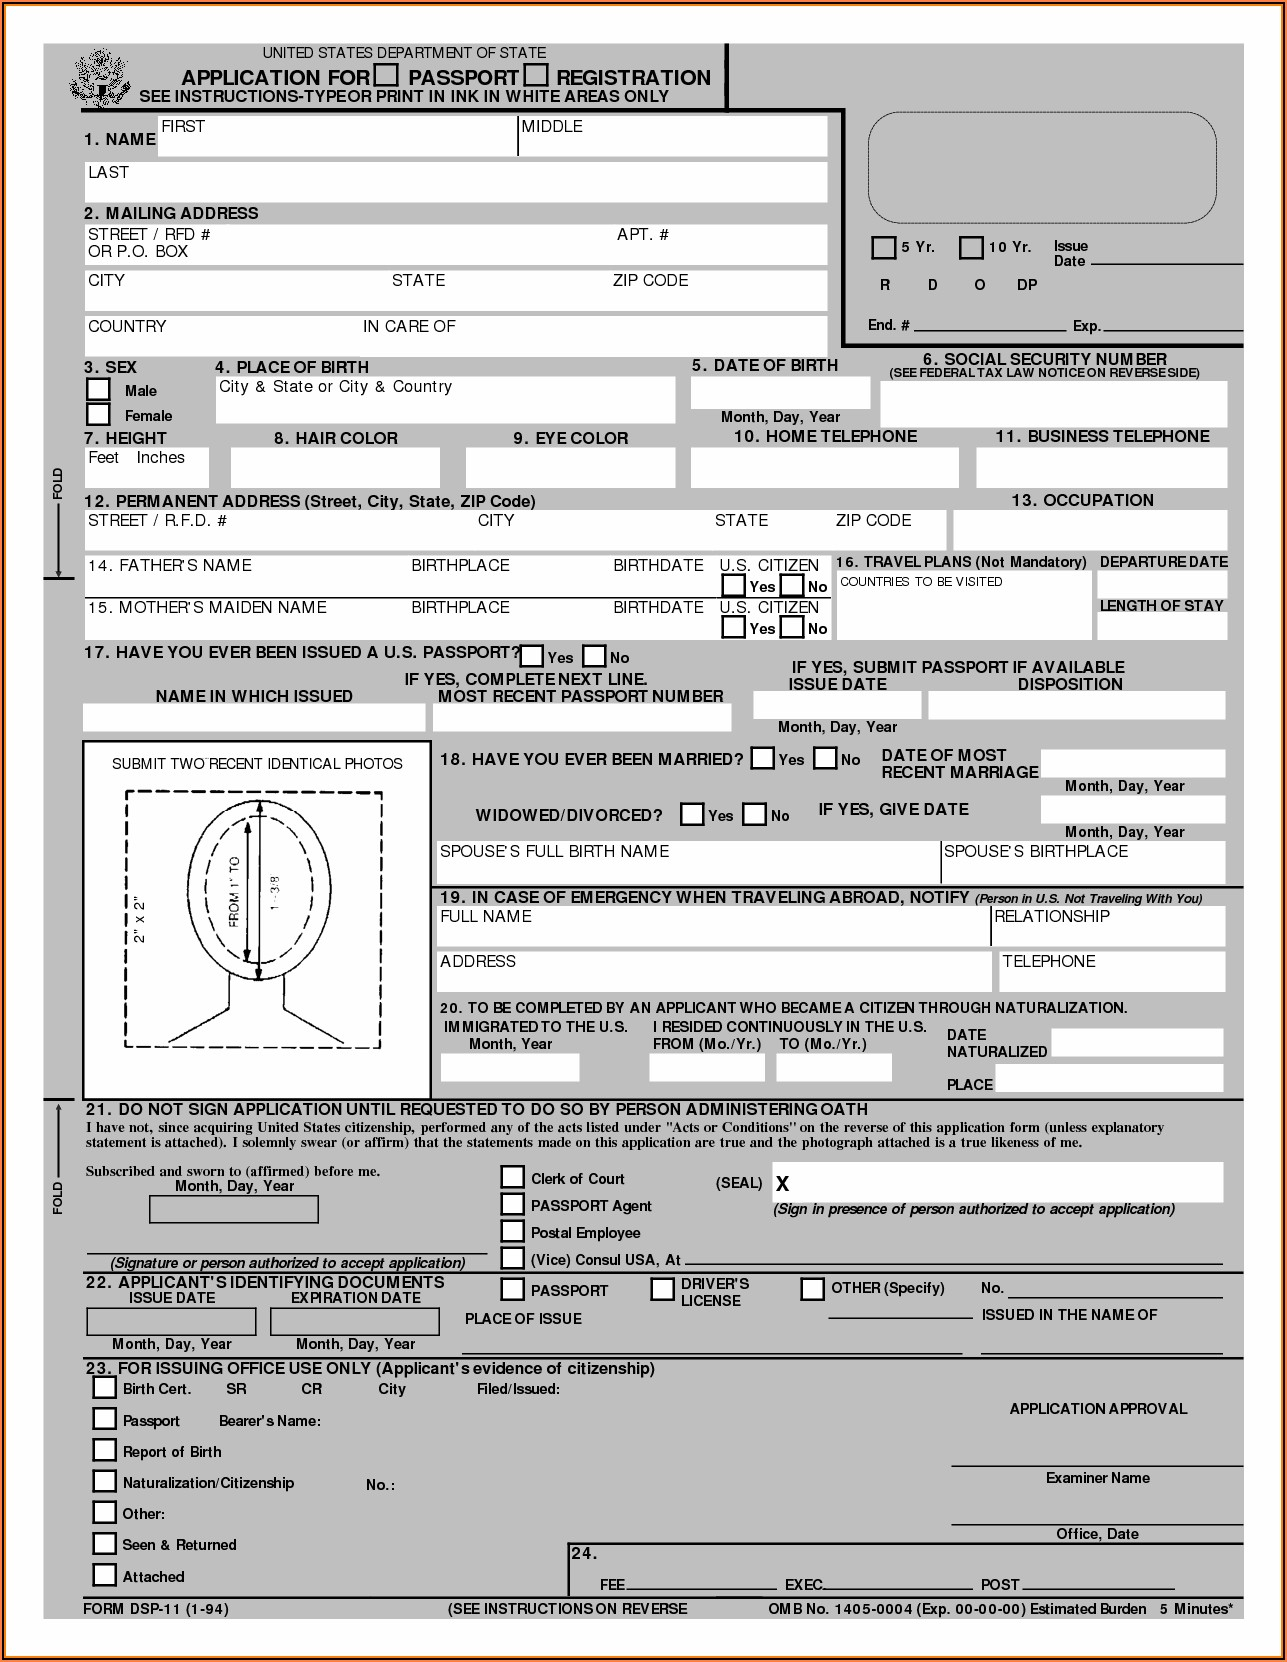 W 9 Forms 2019 Printable Form Resume Examples ygKzZW9KP9